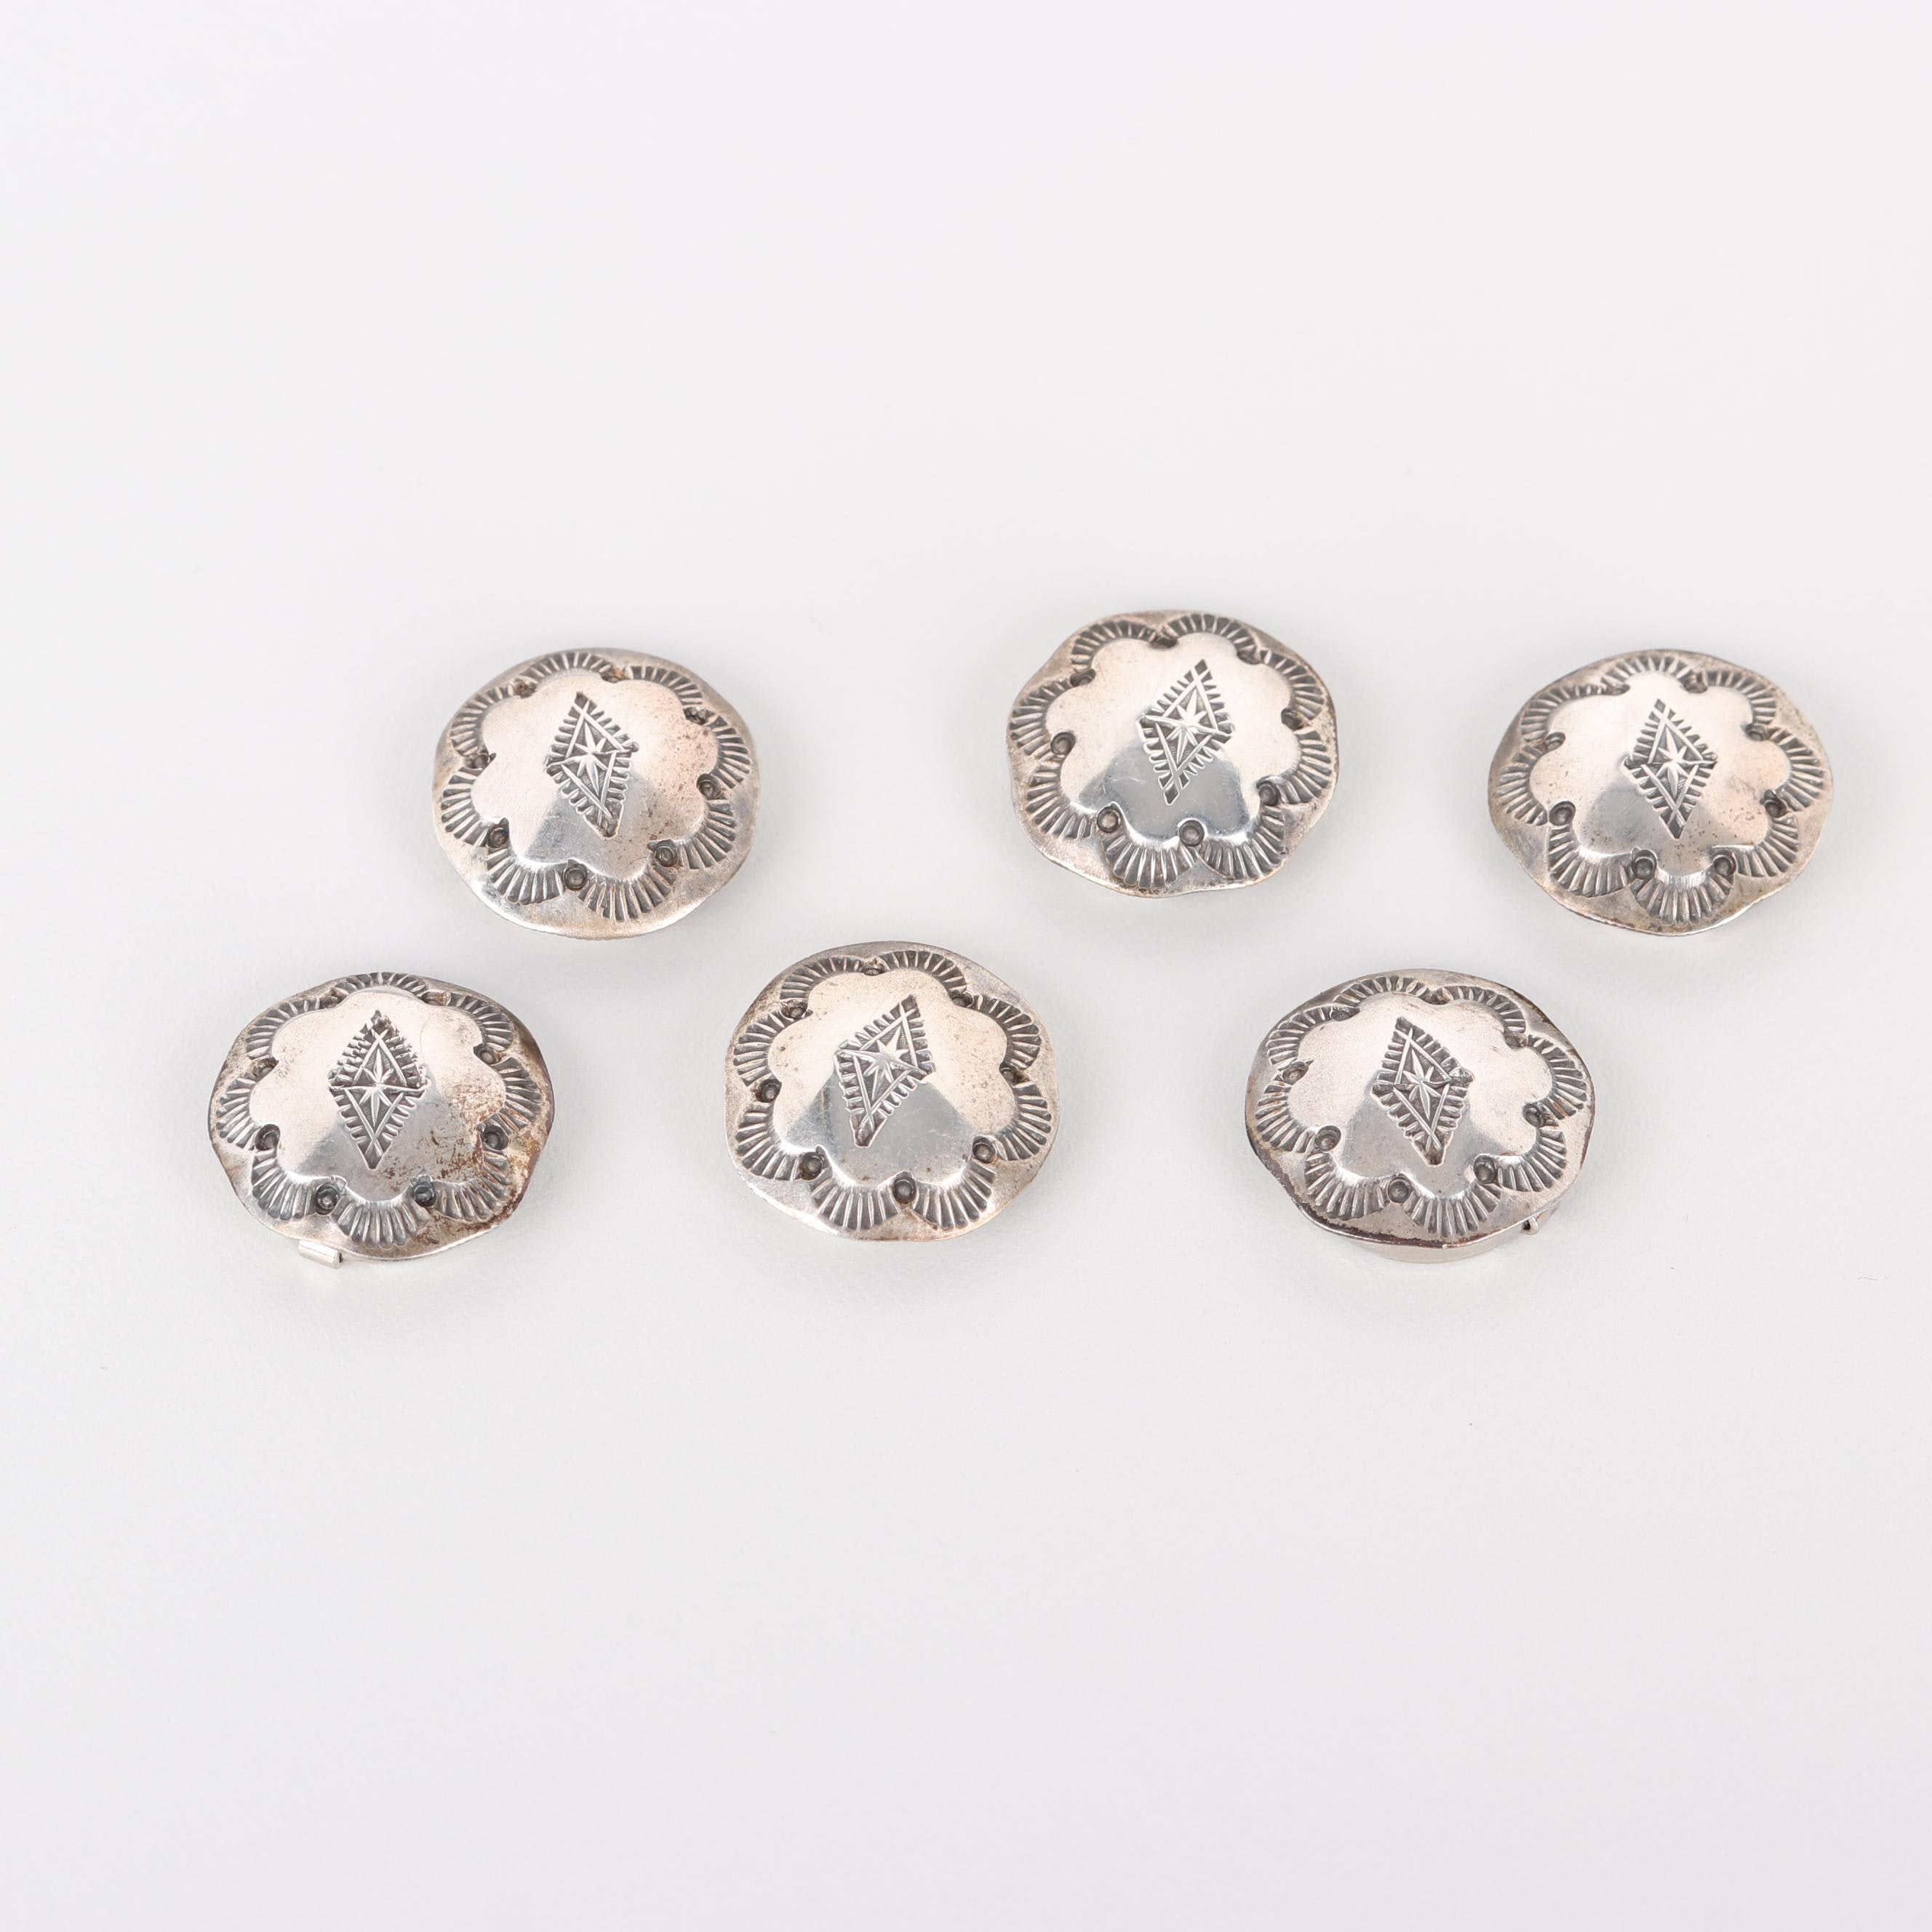 Vintage 800 Silver Button Covers